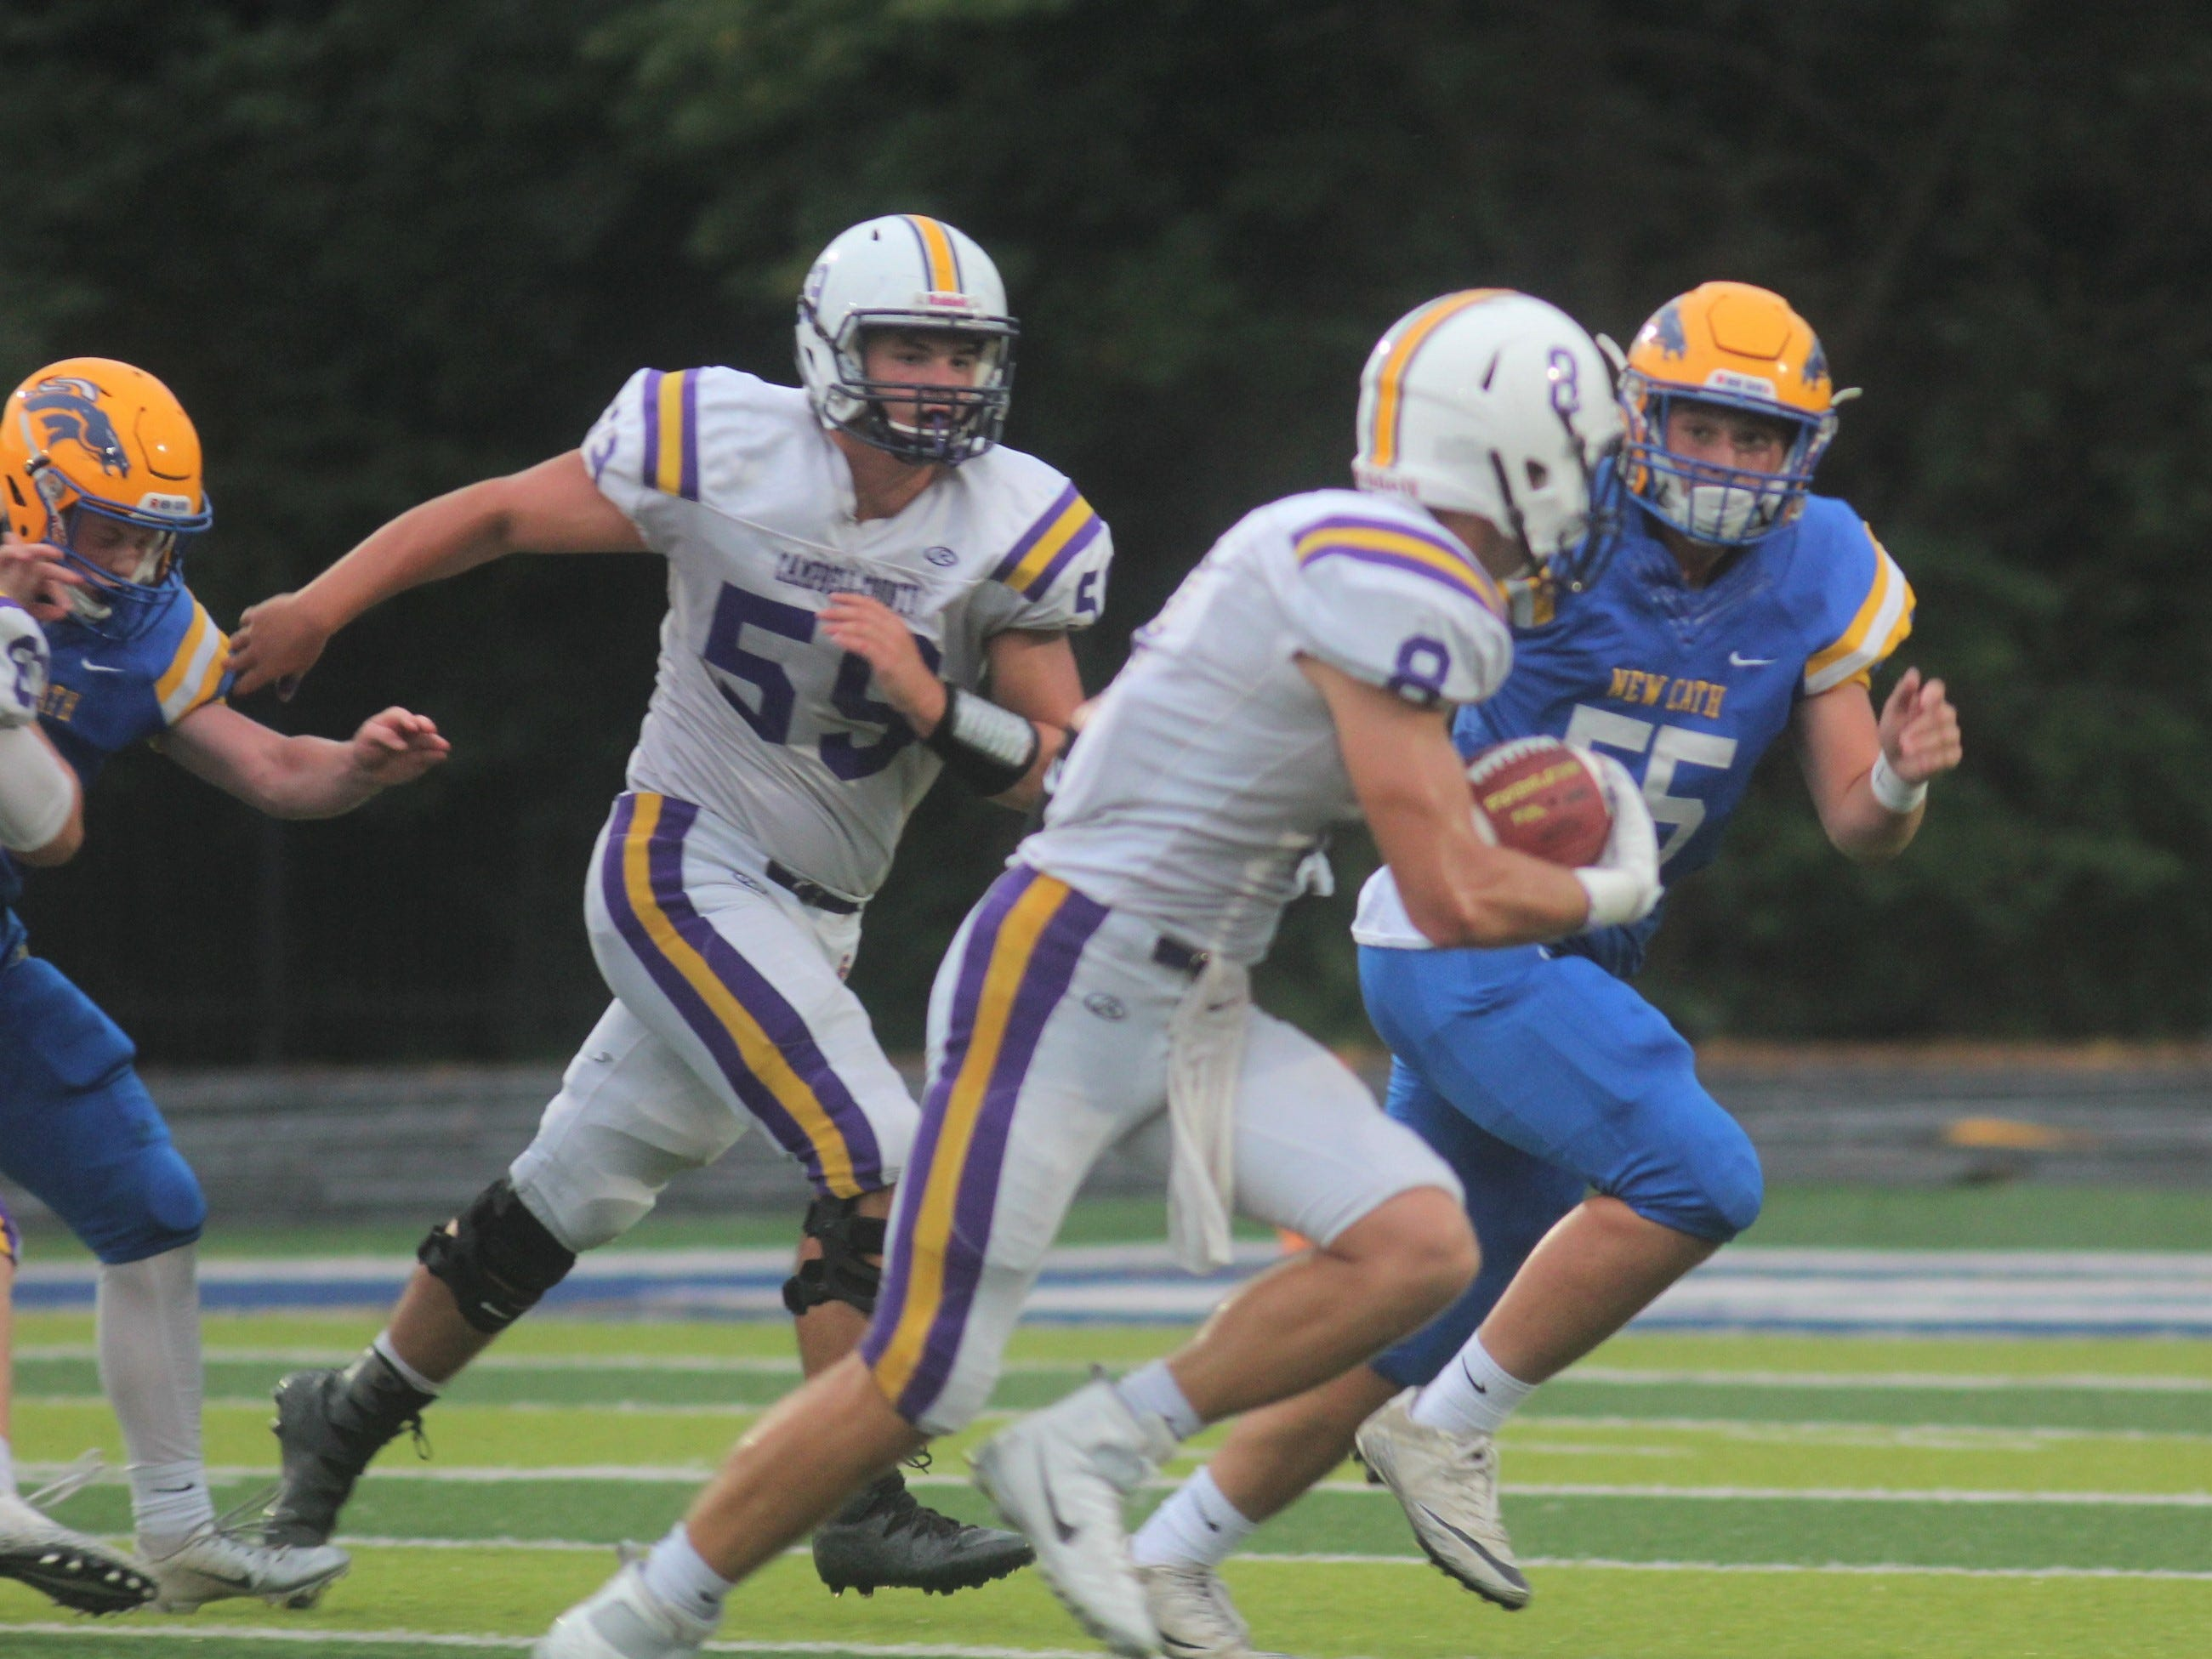 Grant Jolly of Campbell County looks for running room with NCC junior Daniel Craig in pursuit as Campbell County and Newport Central Catholic played a football game August 31, 2018 at Covington Catholic High School. Campbell County led 24-0 at halftime when the game was suspended due to lightning.